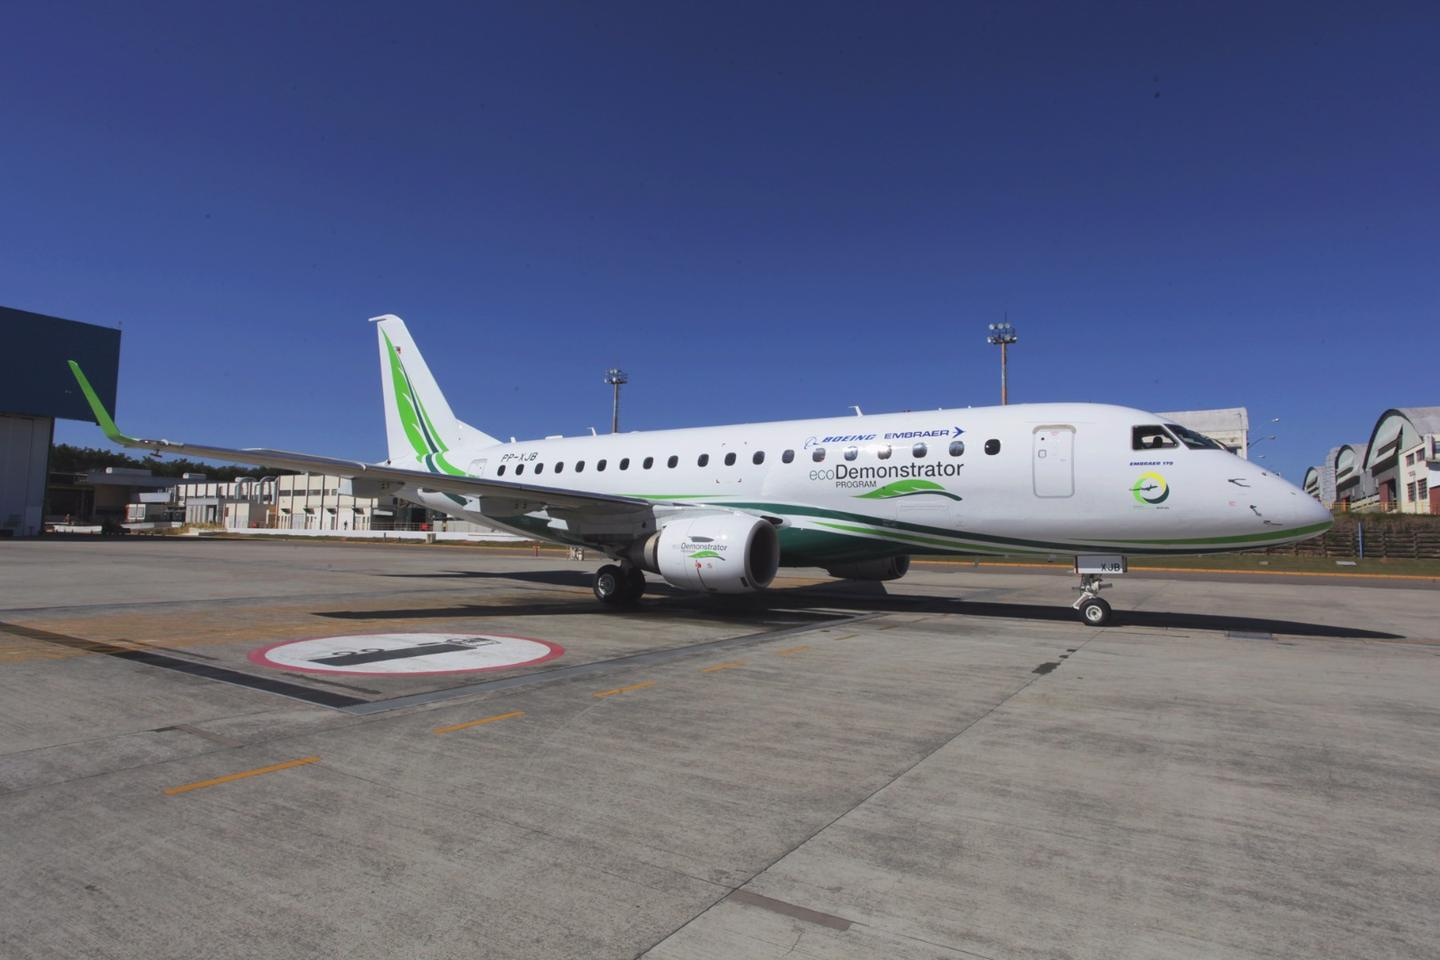 Boeing and Embraer SA unveiled the next phase of the Boeing ecoDemonstrator program today